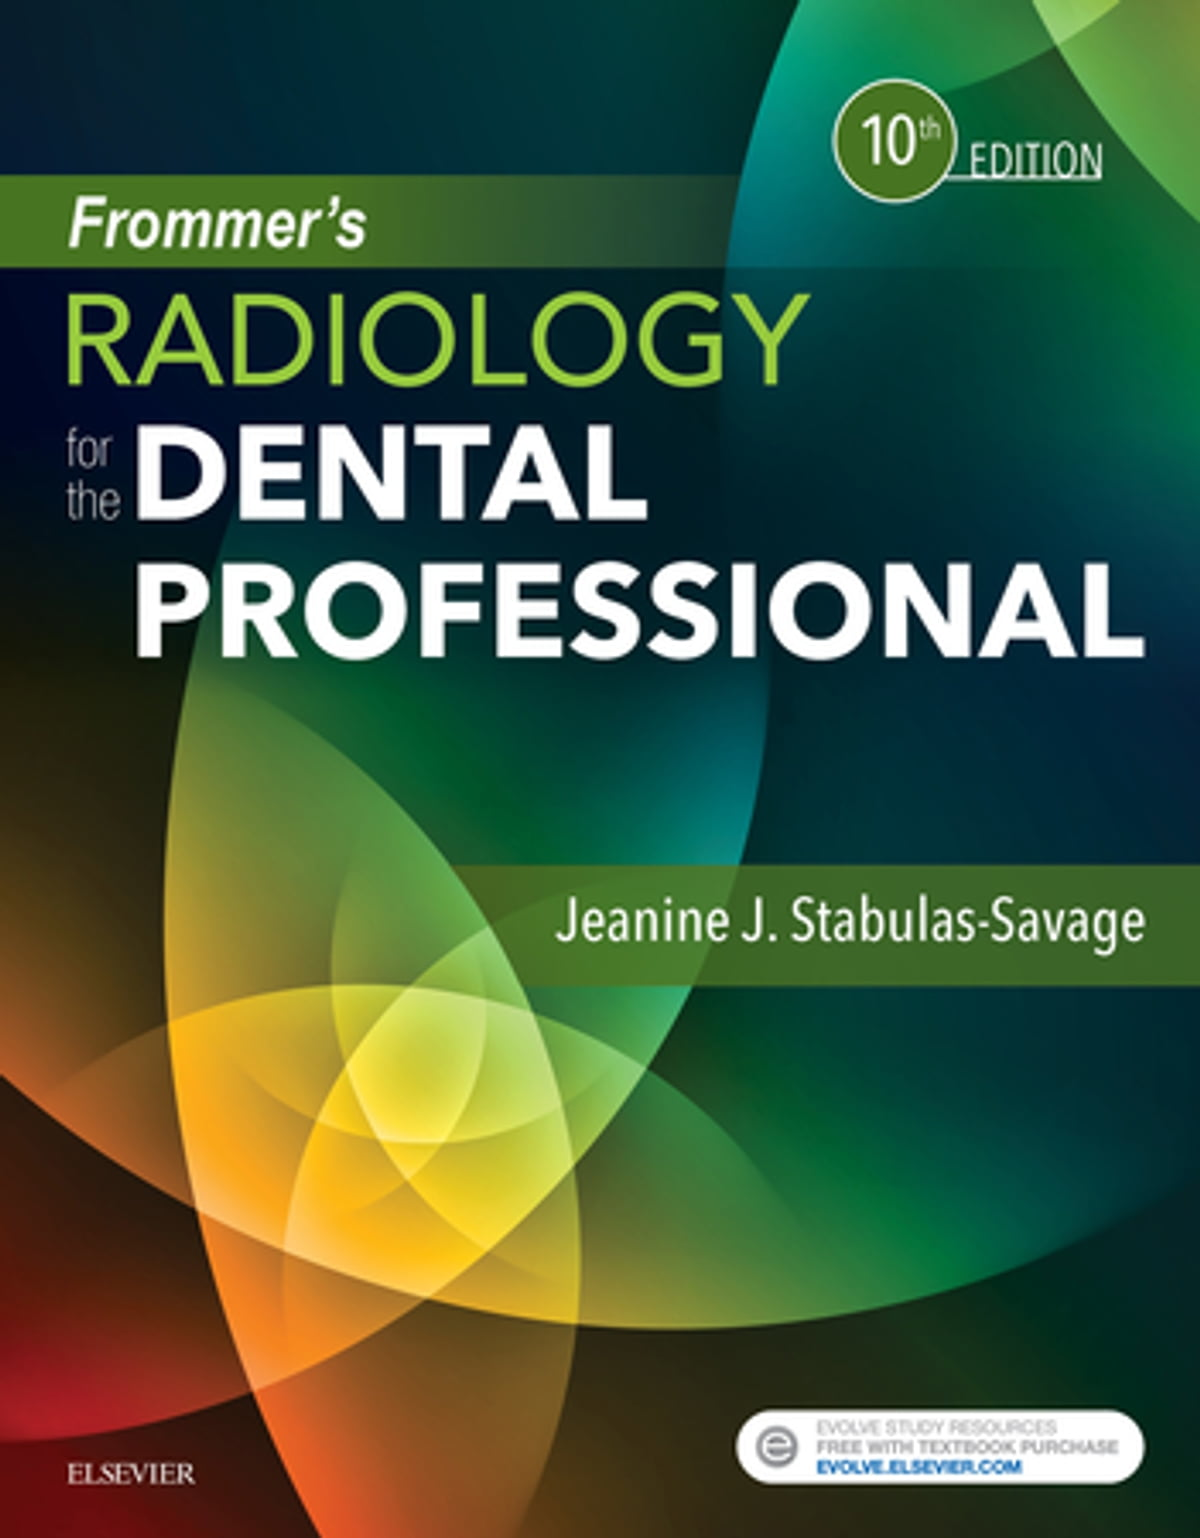 Frommer's Radiology for the Dental Professional - E-Book ebook by Jeanine  J  Stabulas-Savage, RDH, BS, MPH - Rakuten Kobo